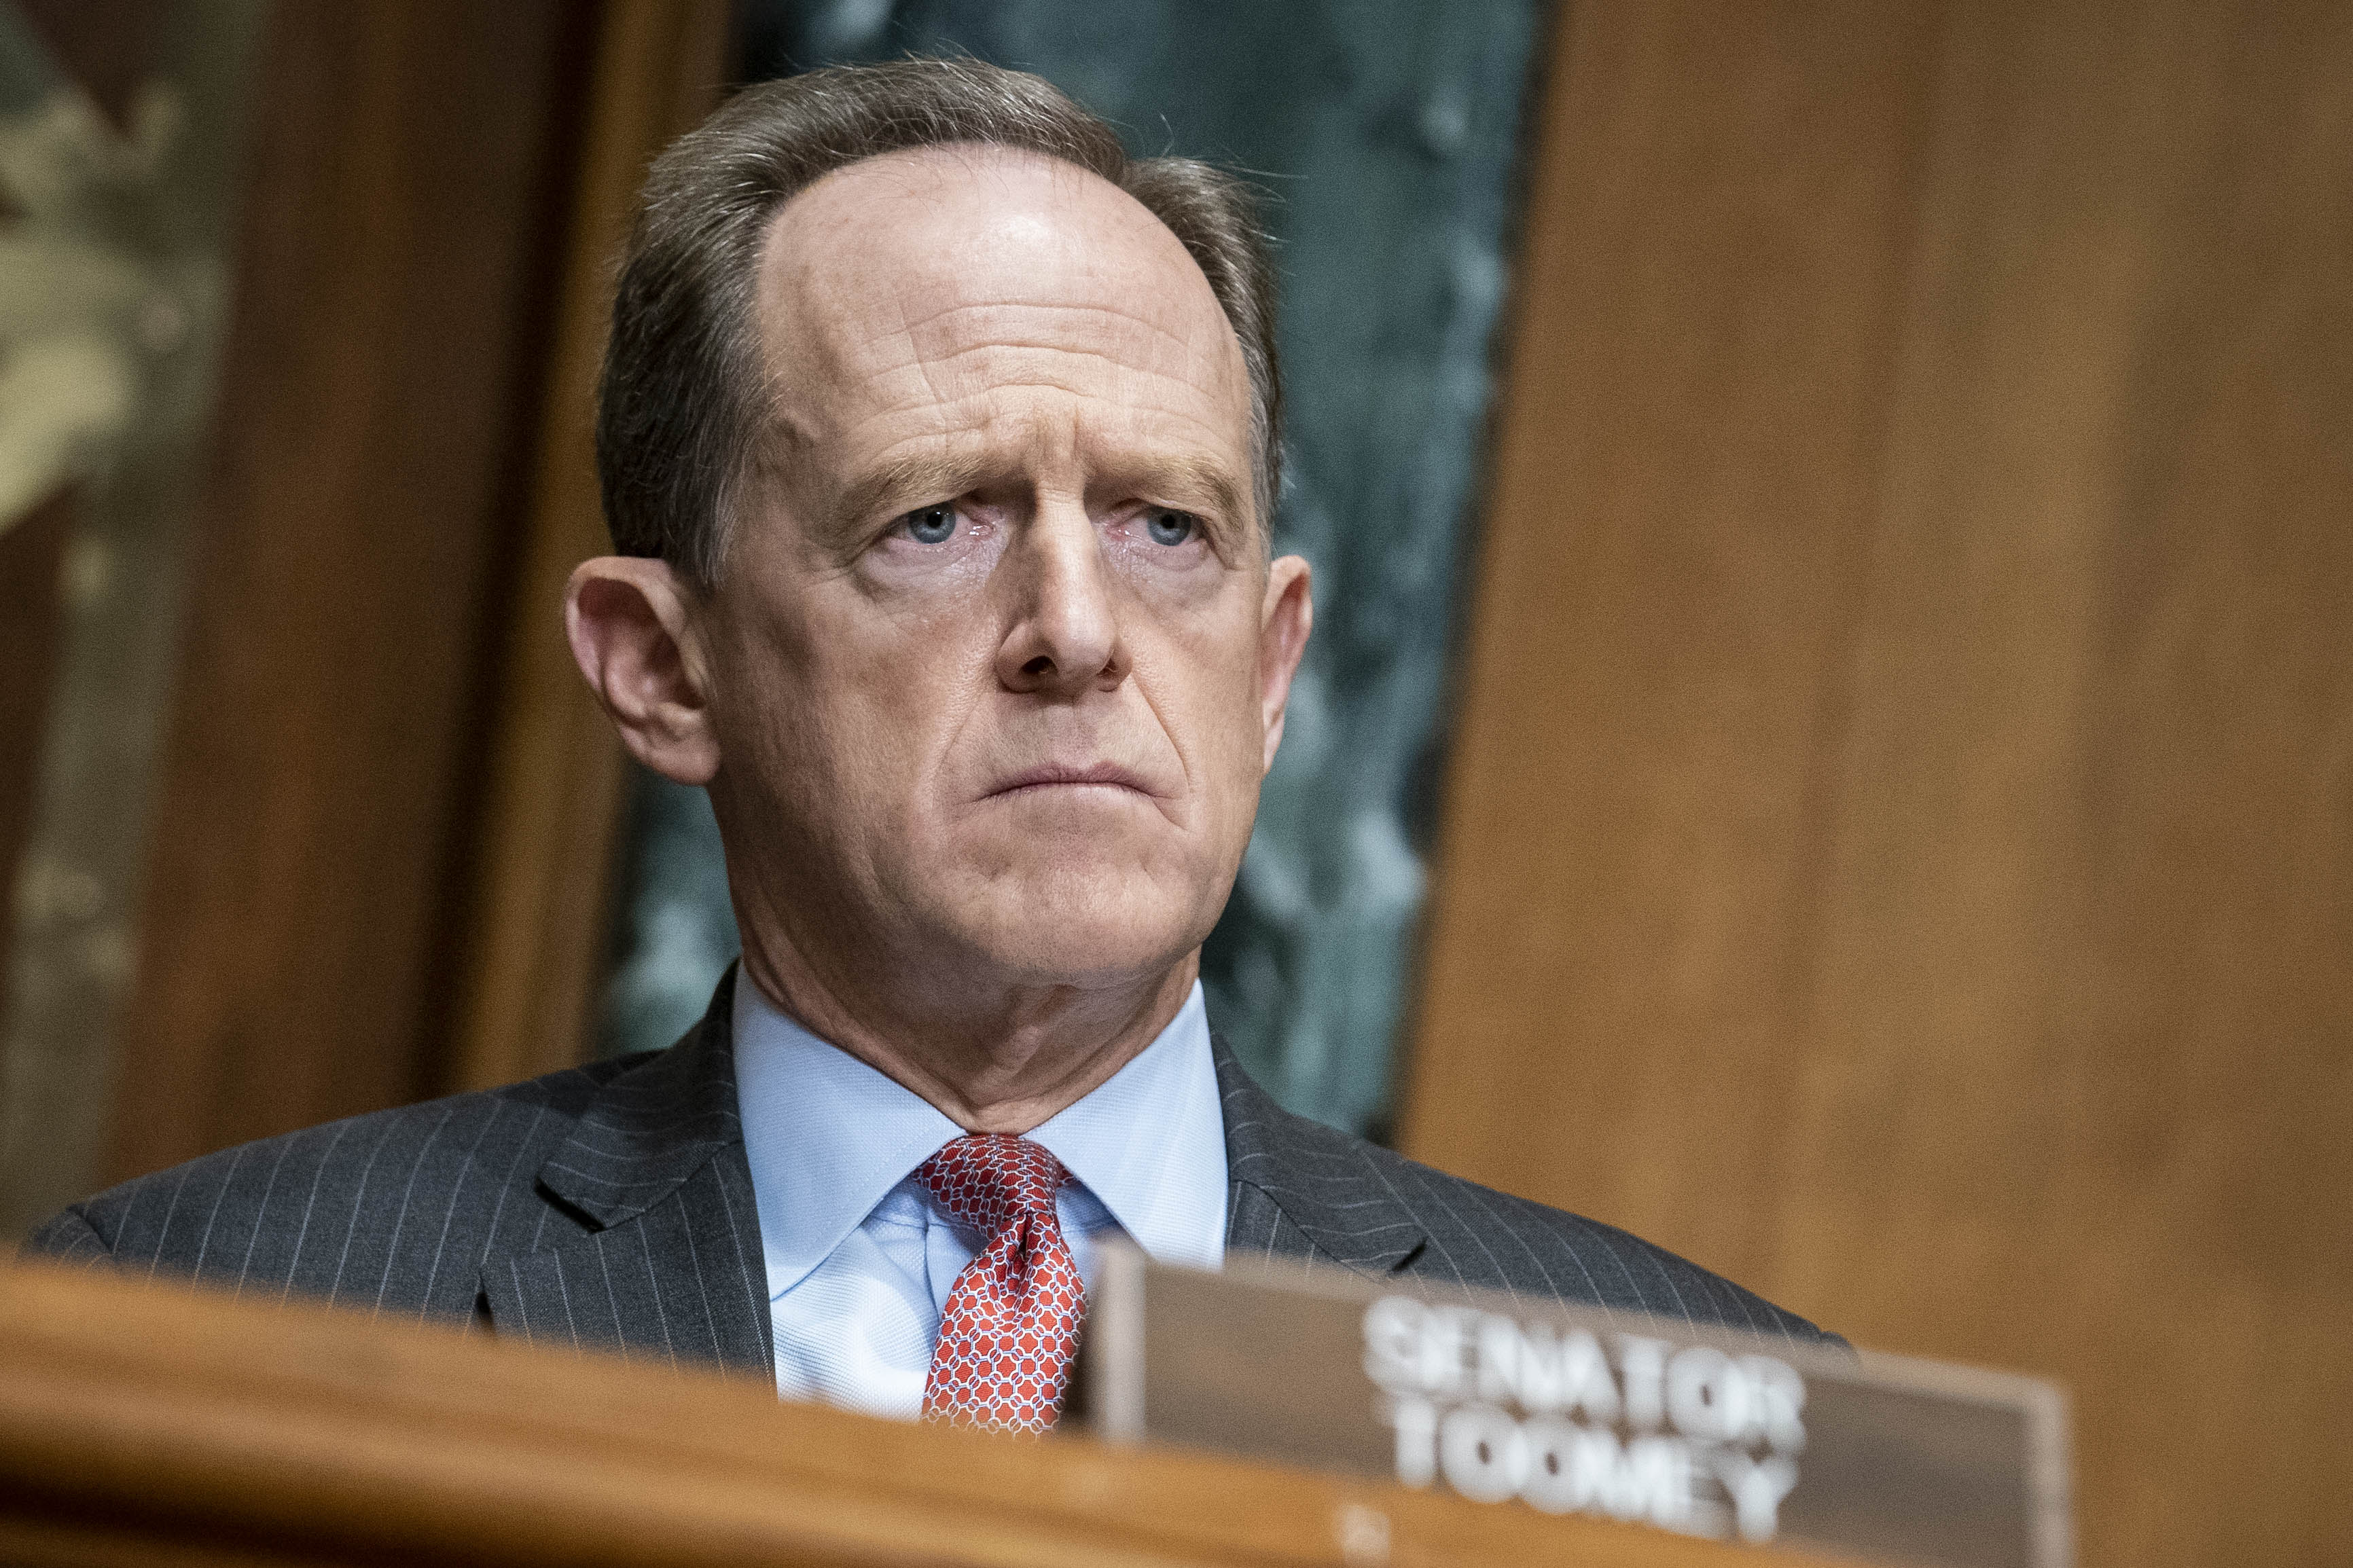 Rep. Senator Pat Toomey (R-PA) on Capitol Hill in Washington, D.C. (Photo by Sarah Silbiger-Pool/Getty Images)